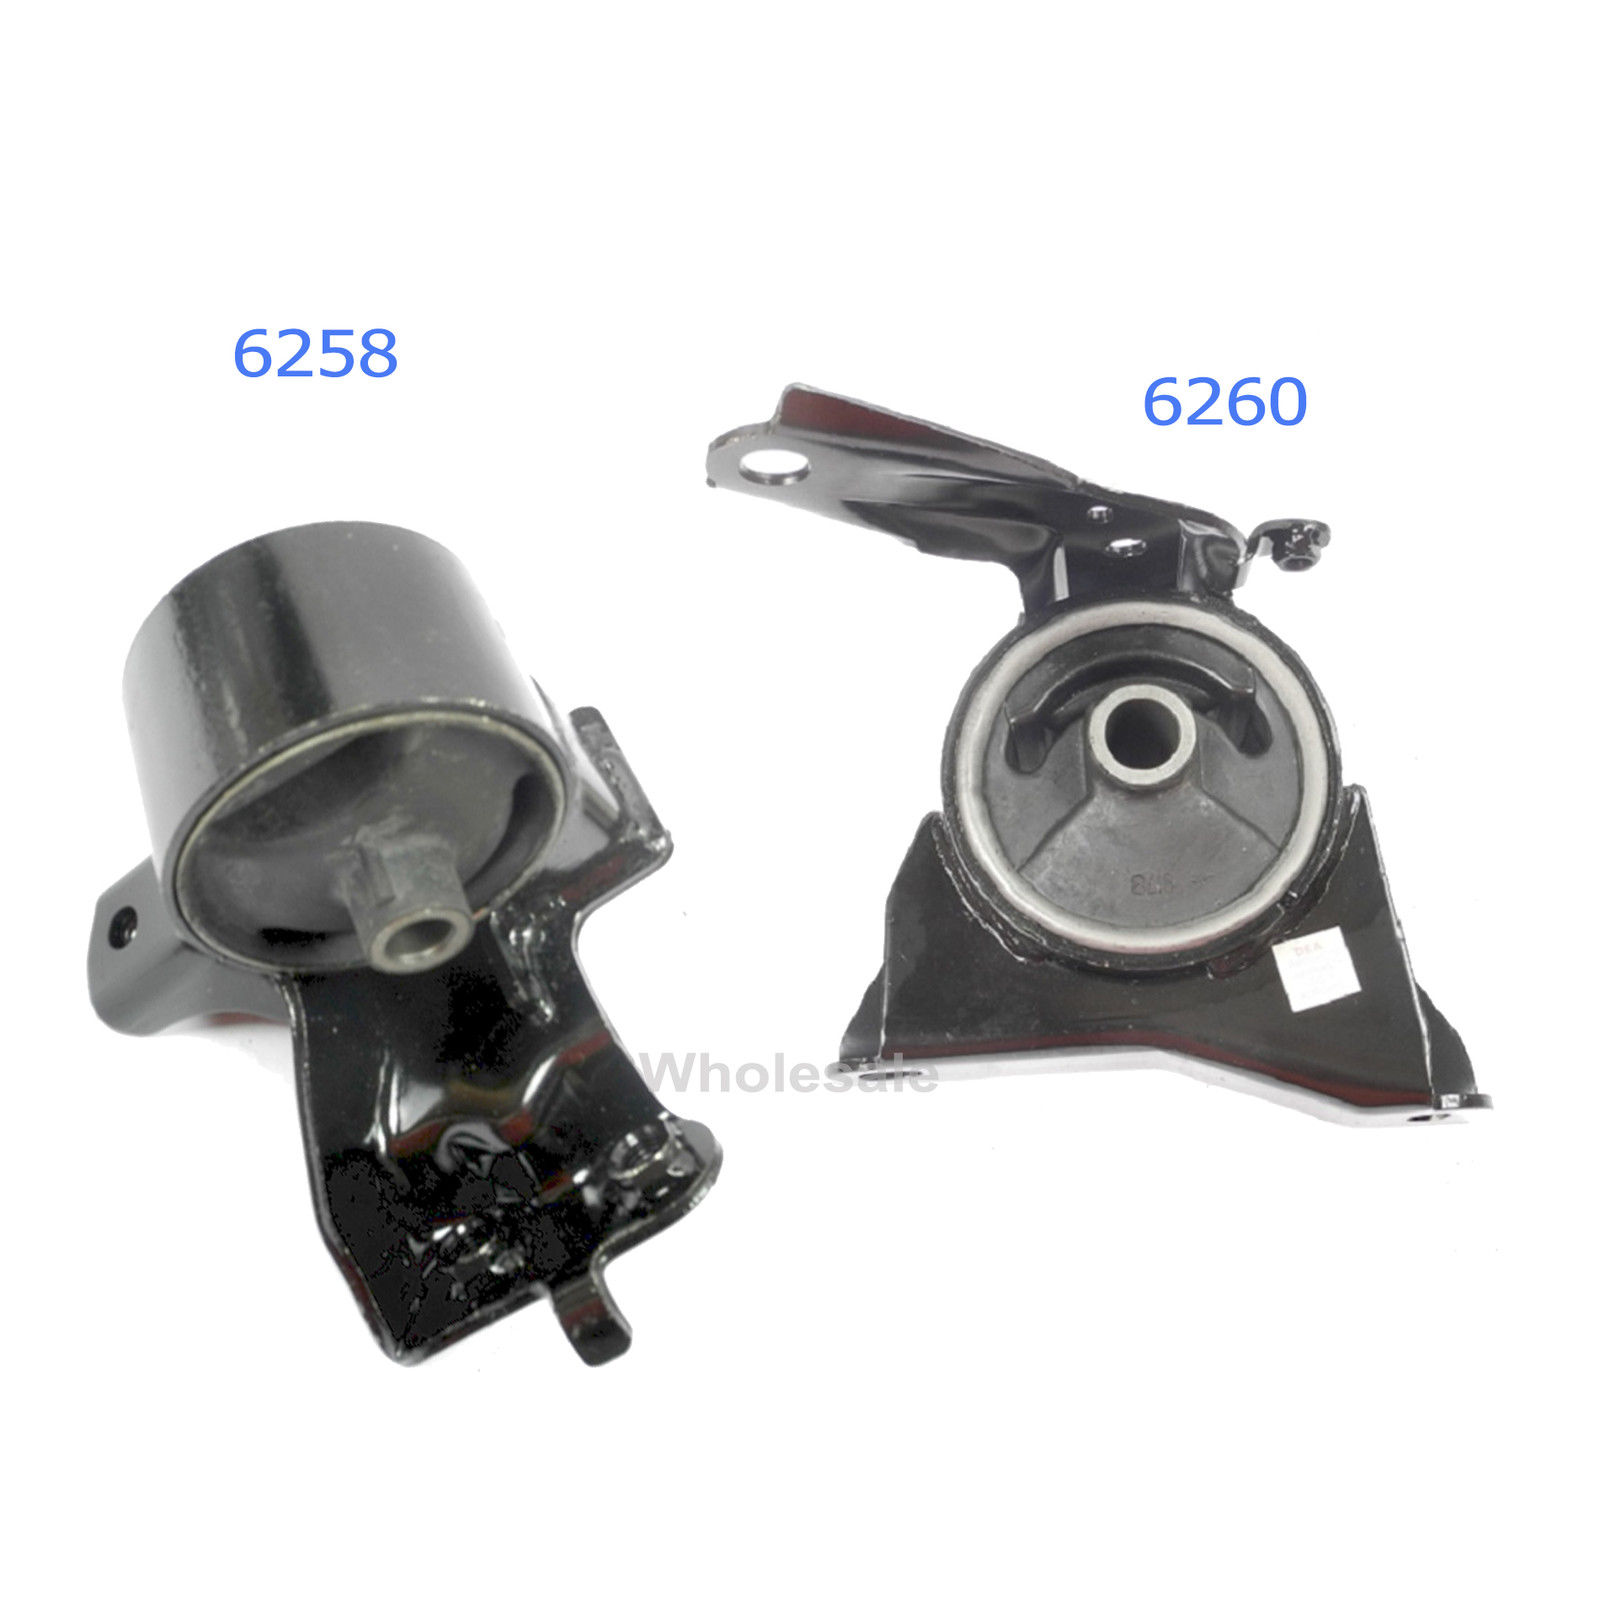 93-97 For Toyota Corolla GEO Prizm Set 2 Trans Engine Motor Mount 6258 6260 M452